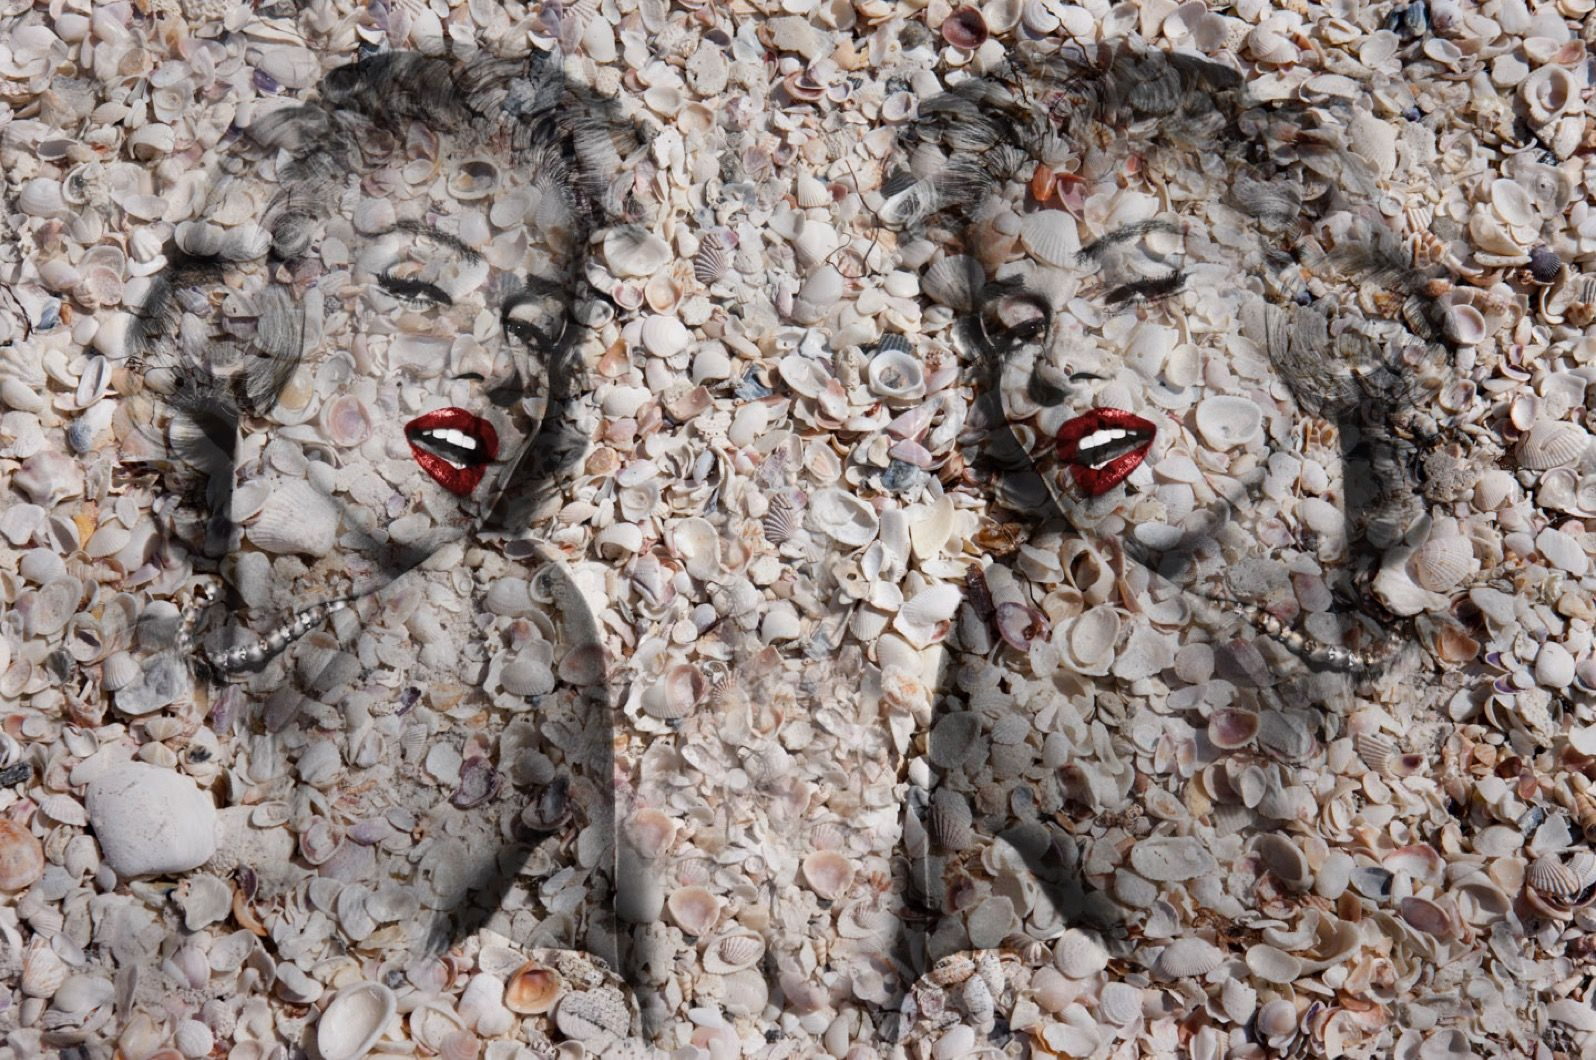 Double Marilyn Portrait of Shells